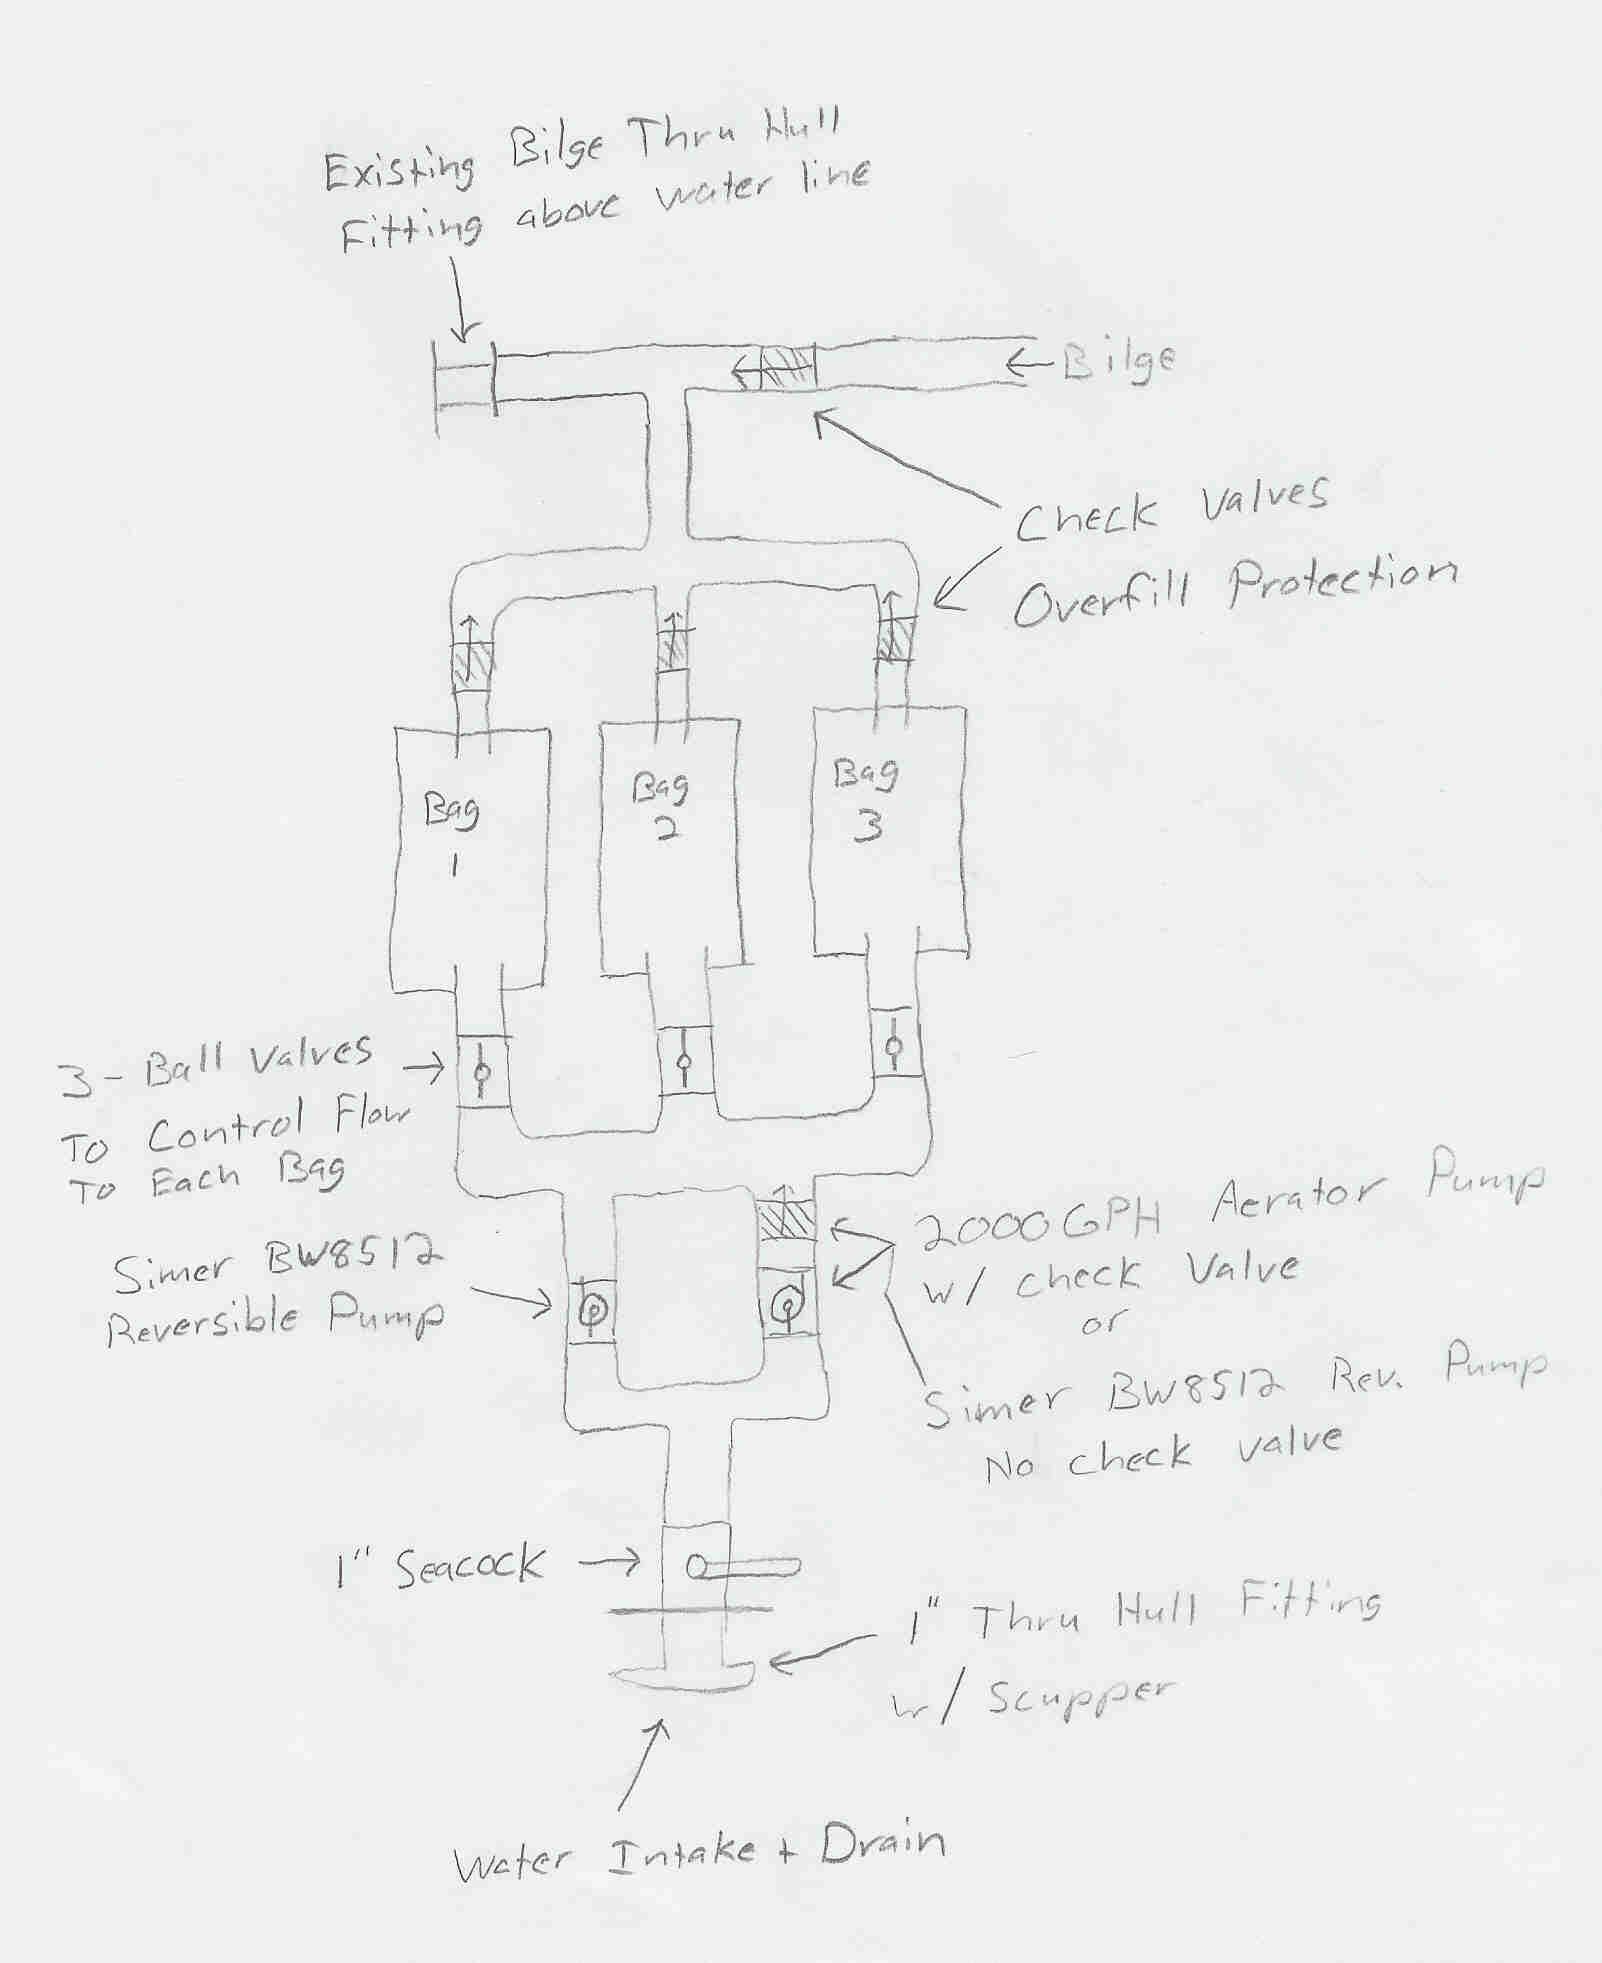 Wakeboarder Custom Ballast Diagram Amp Wiring Questions Simer Bw